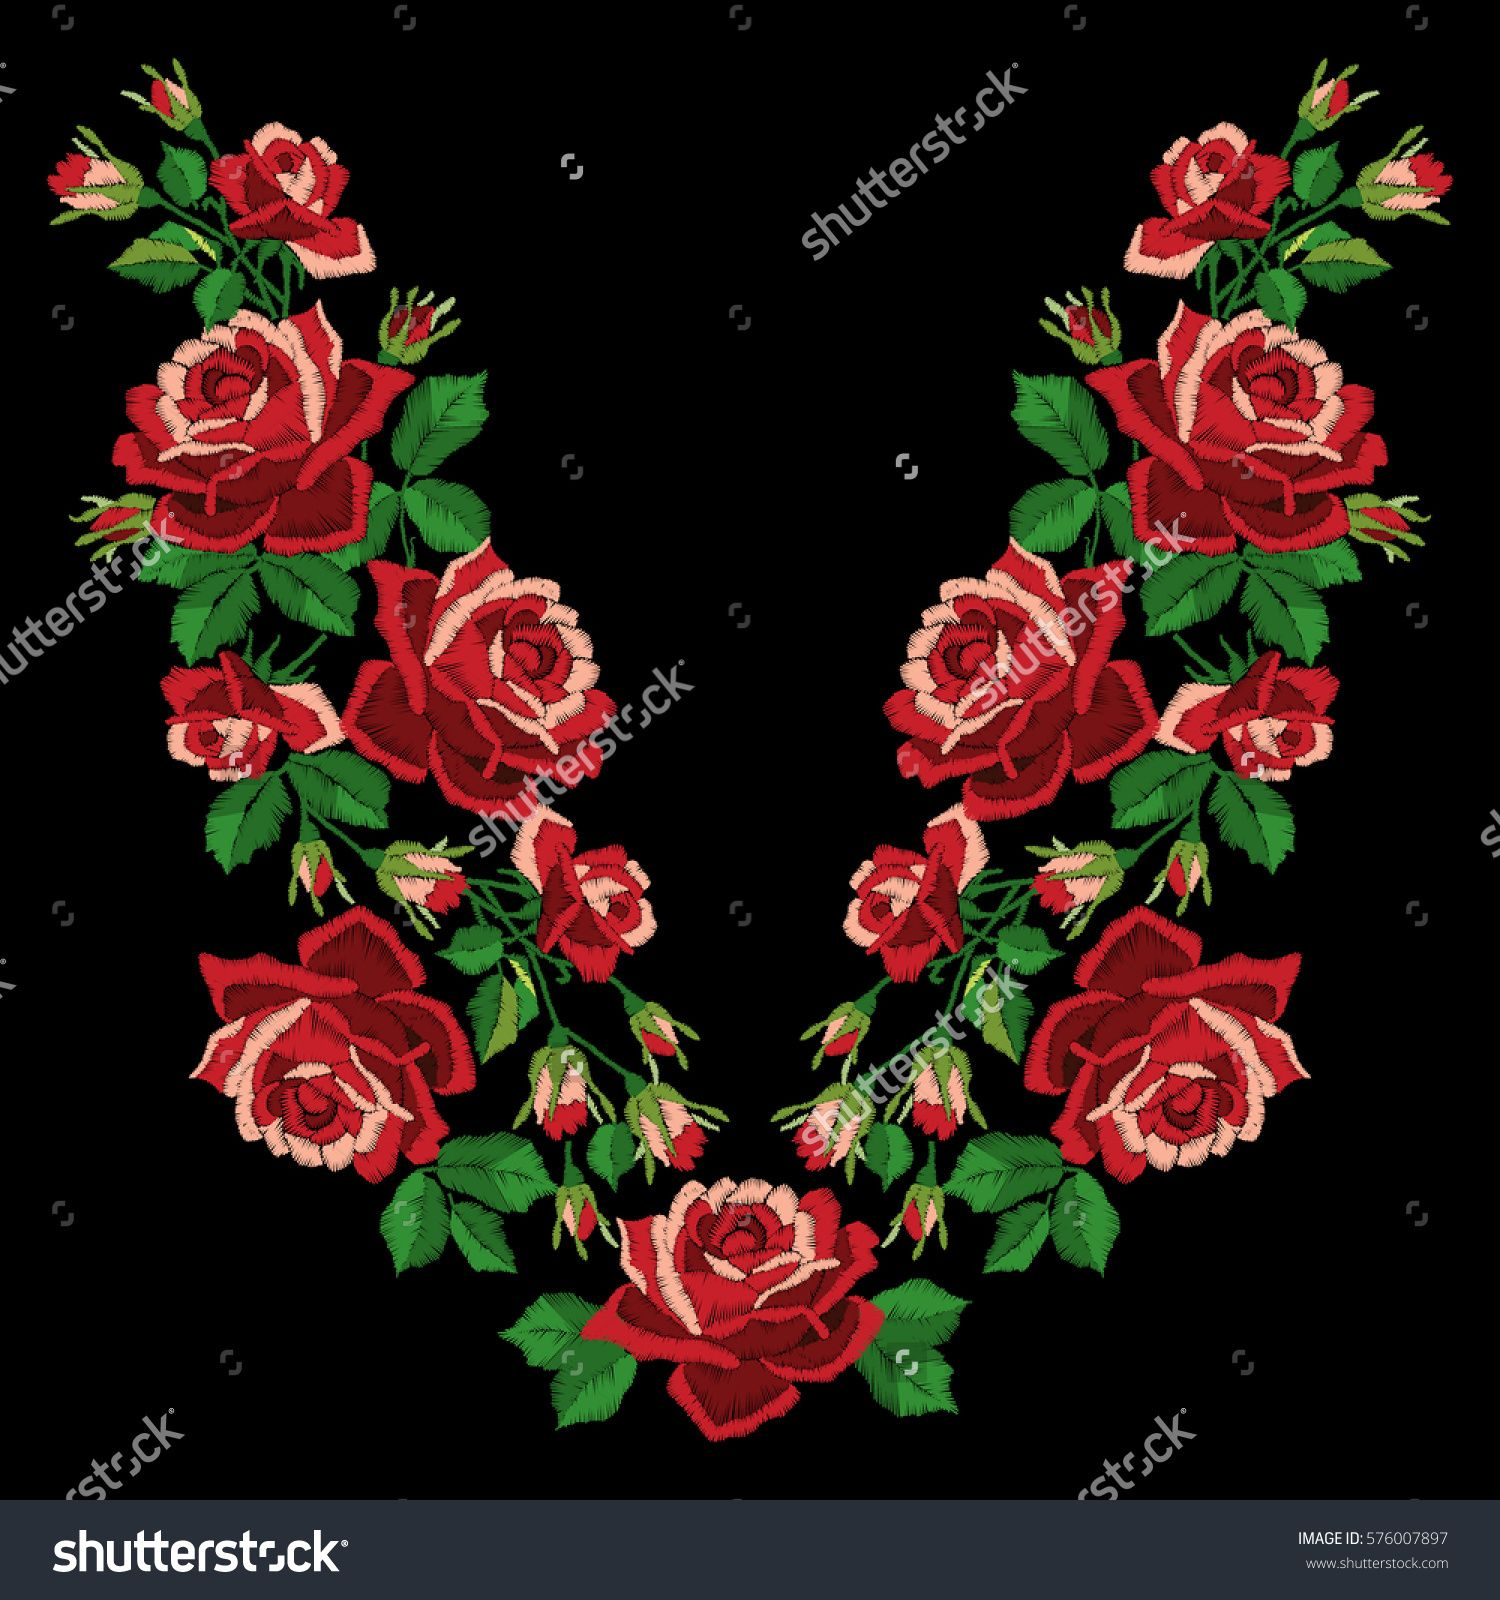 Red roses embroidery with leaves and buds. Ethnic flowers neck line, flower design, graphics fashion wearing. Embroidery for t-shirt. Satin stitch imitation, vector.